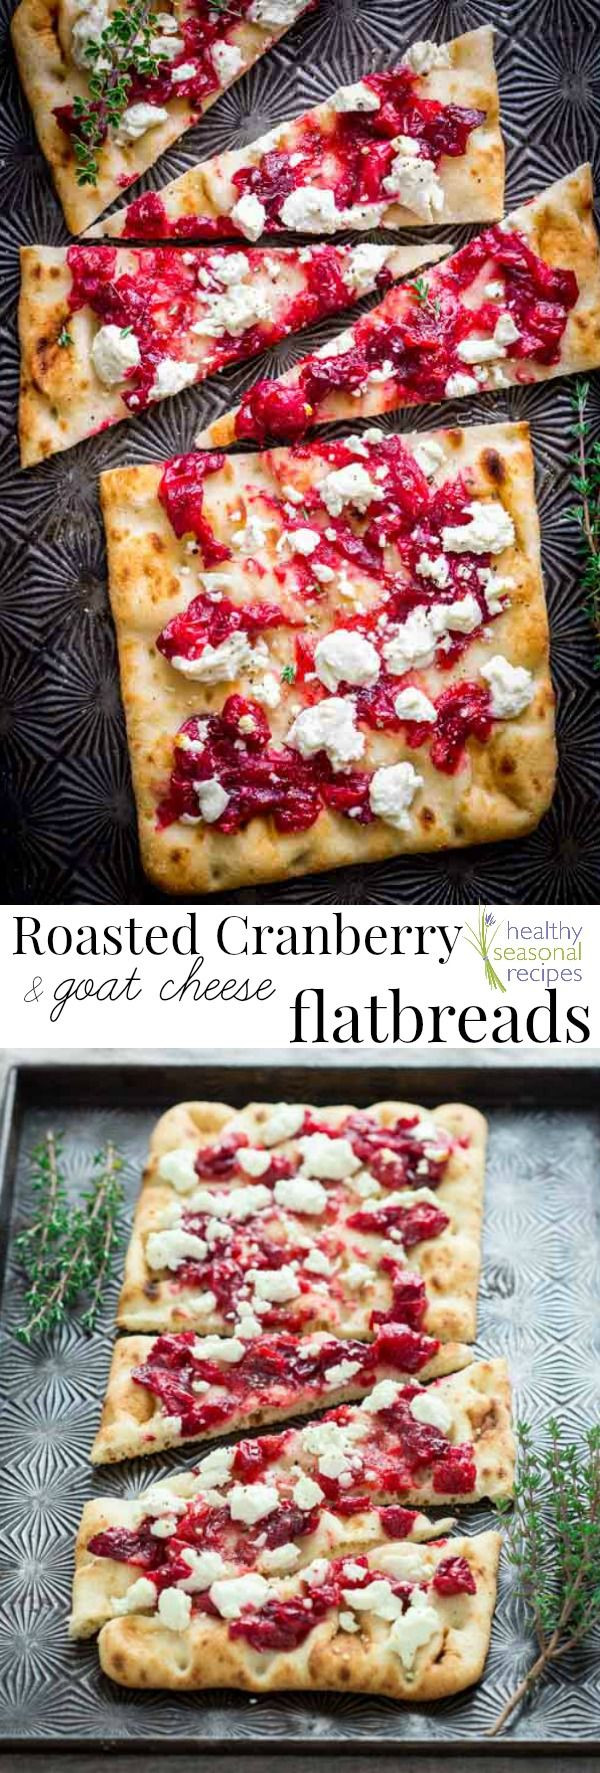 Traditional Christmas Appetizers  1000 ideas about Christmas Party Appetizers on Pinterest